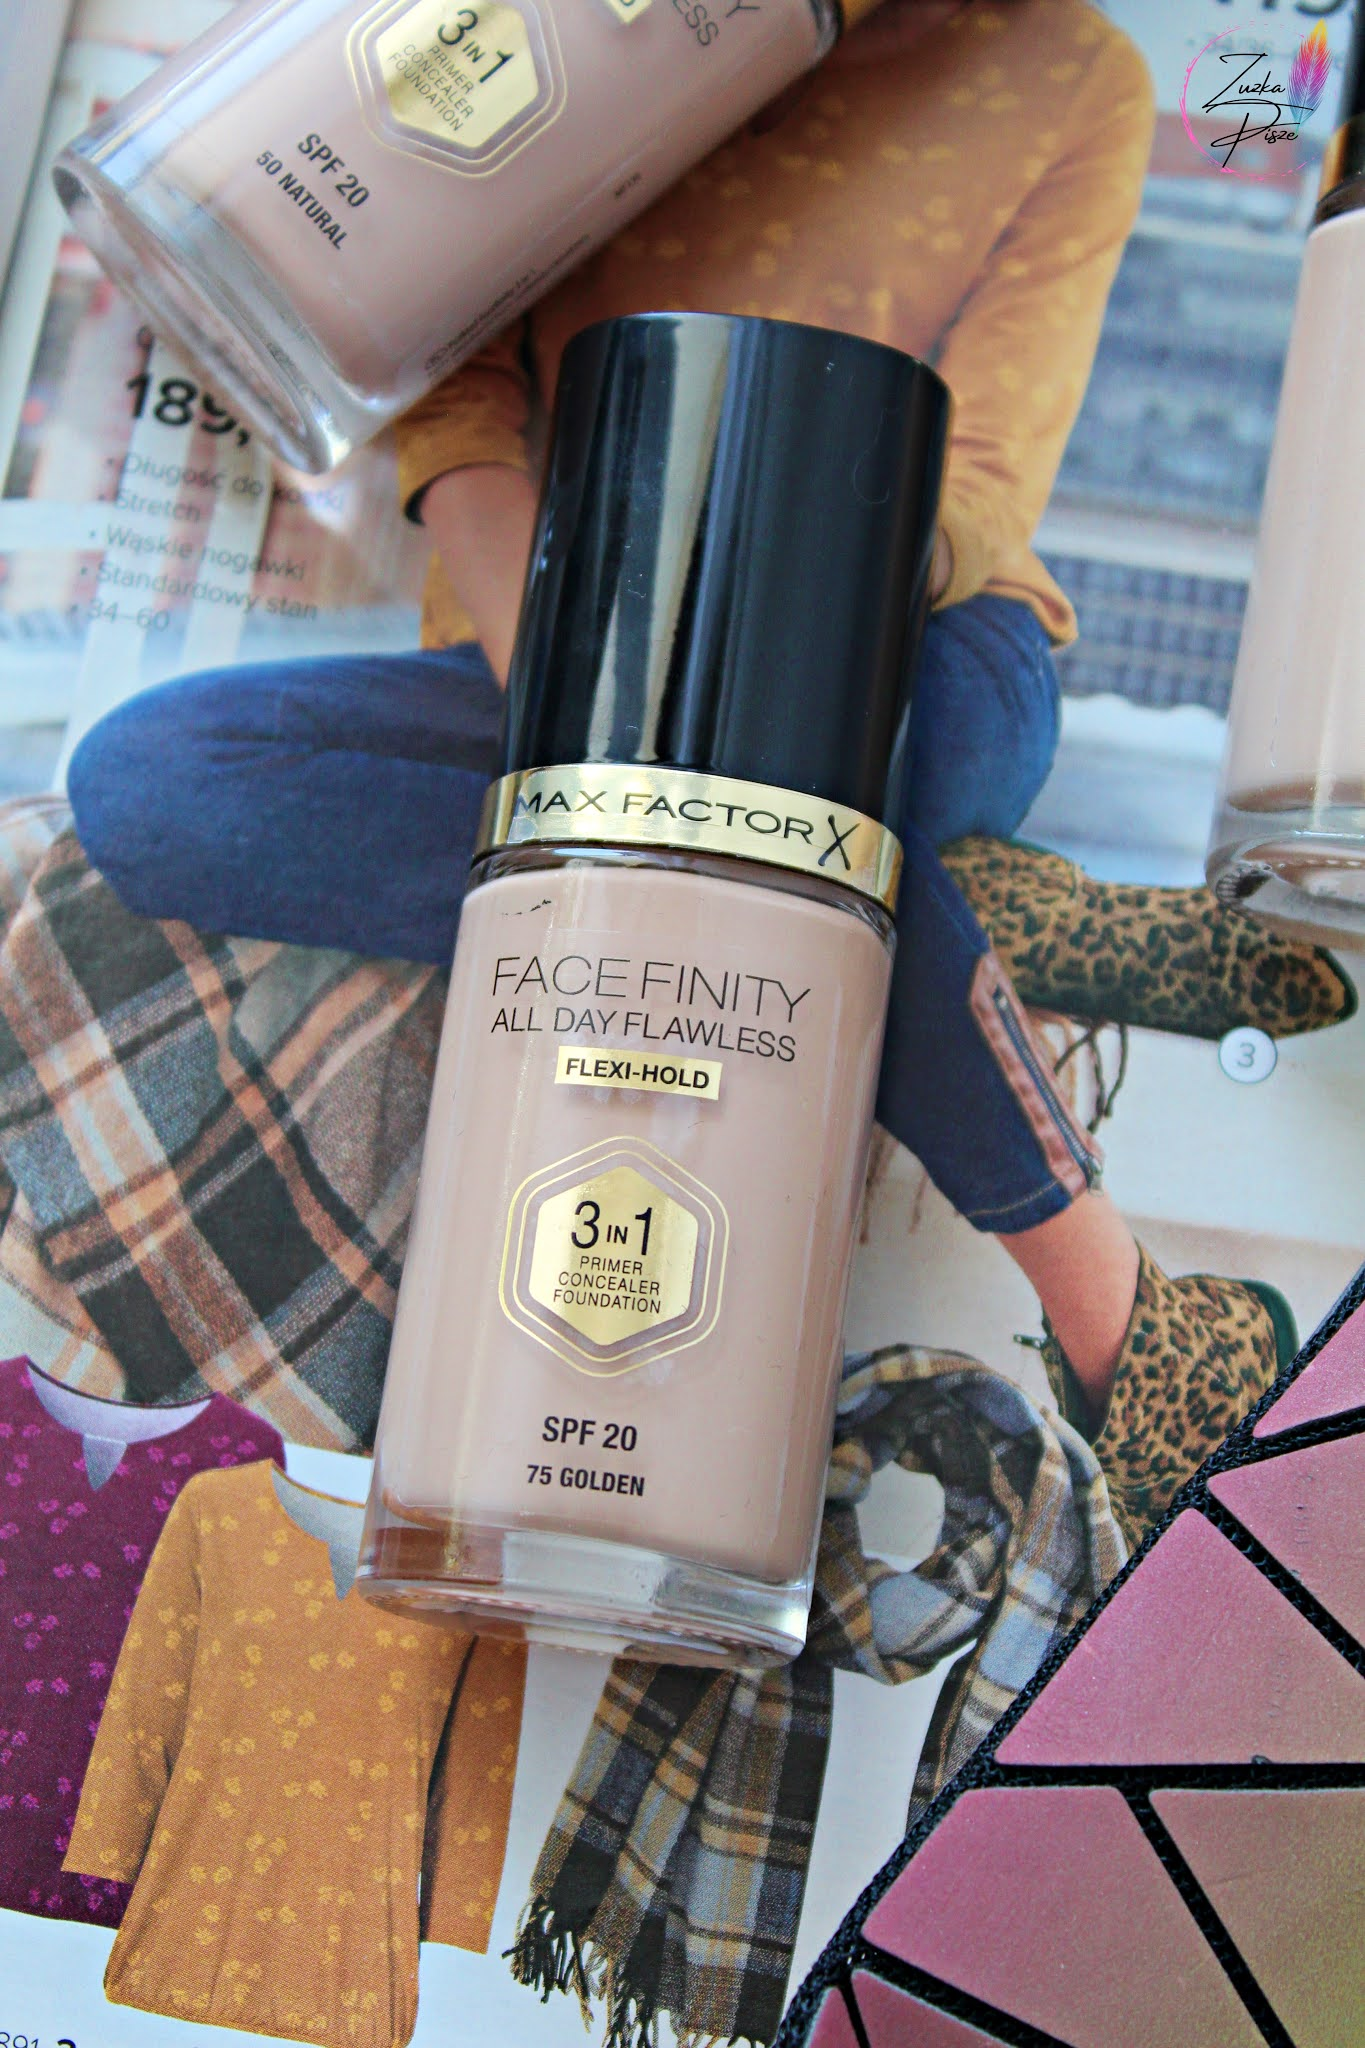 MAX FACTOR - Podkład FaceFinity All day Flawless Flexi-Hold